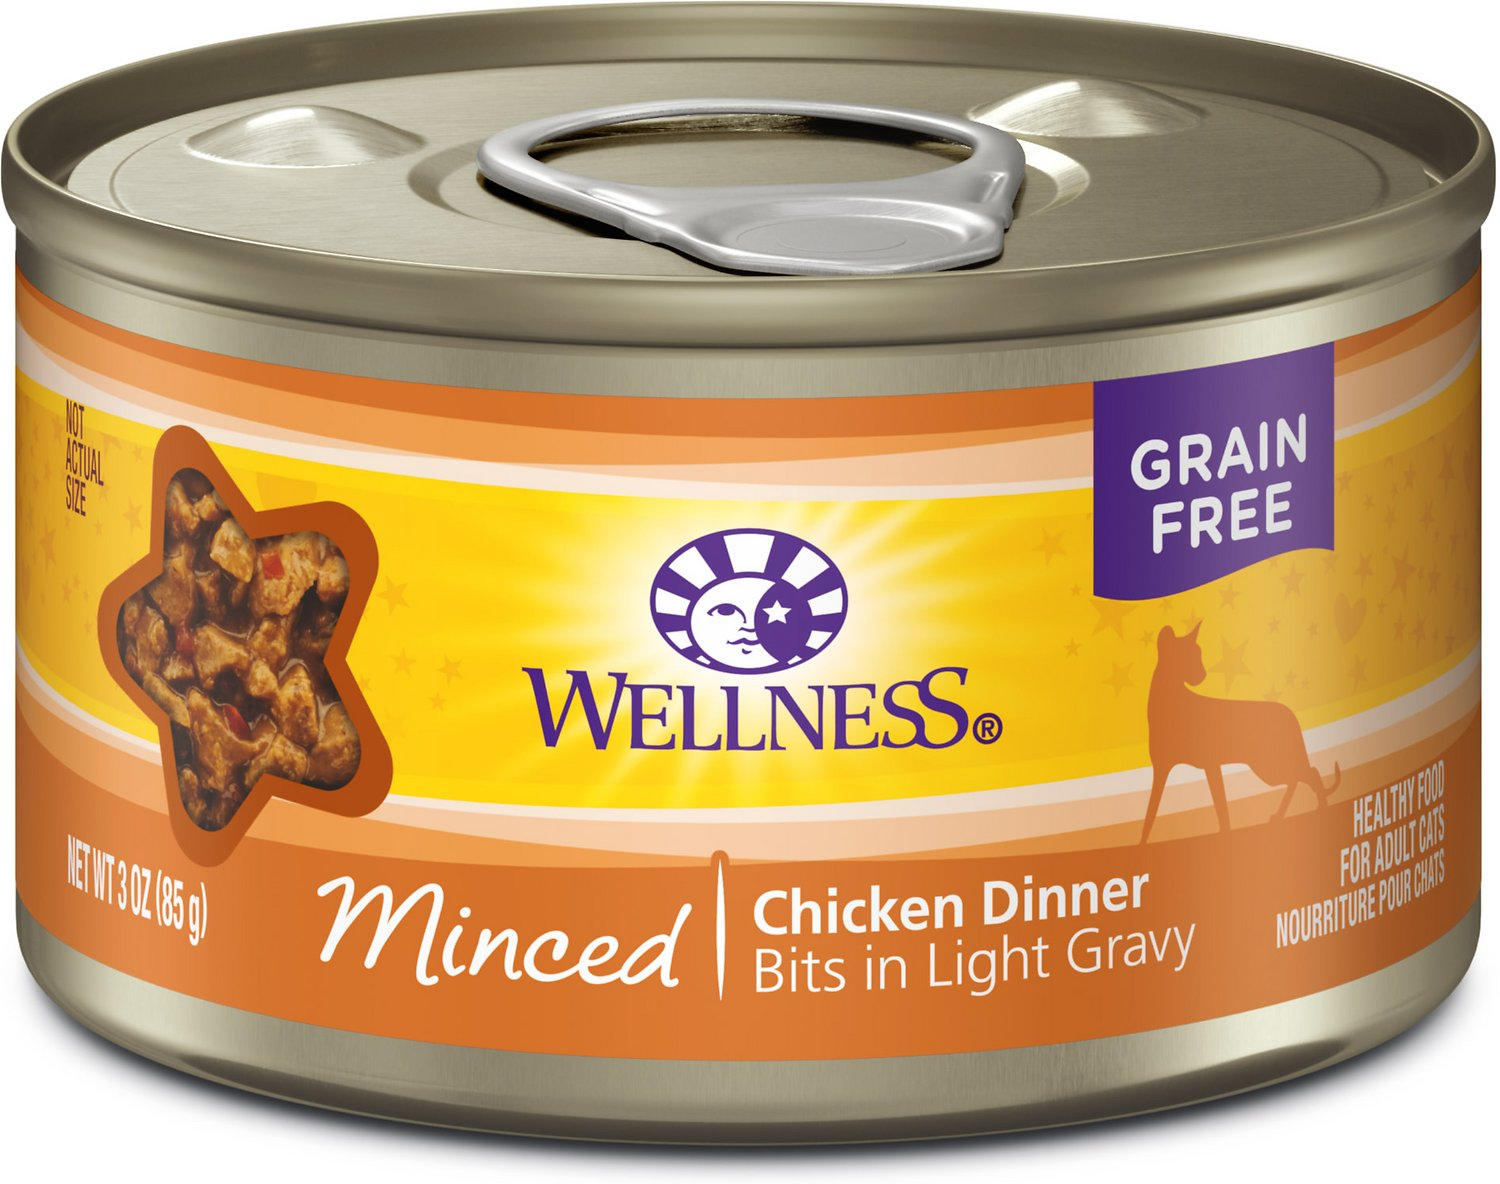 Wellness Grain Free Canned Cat Food Reviews